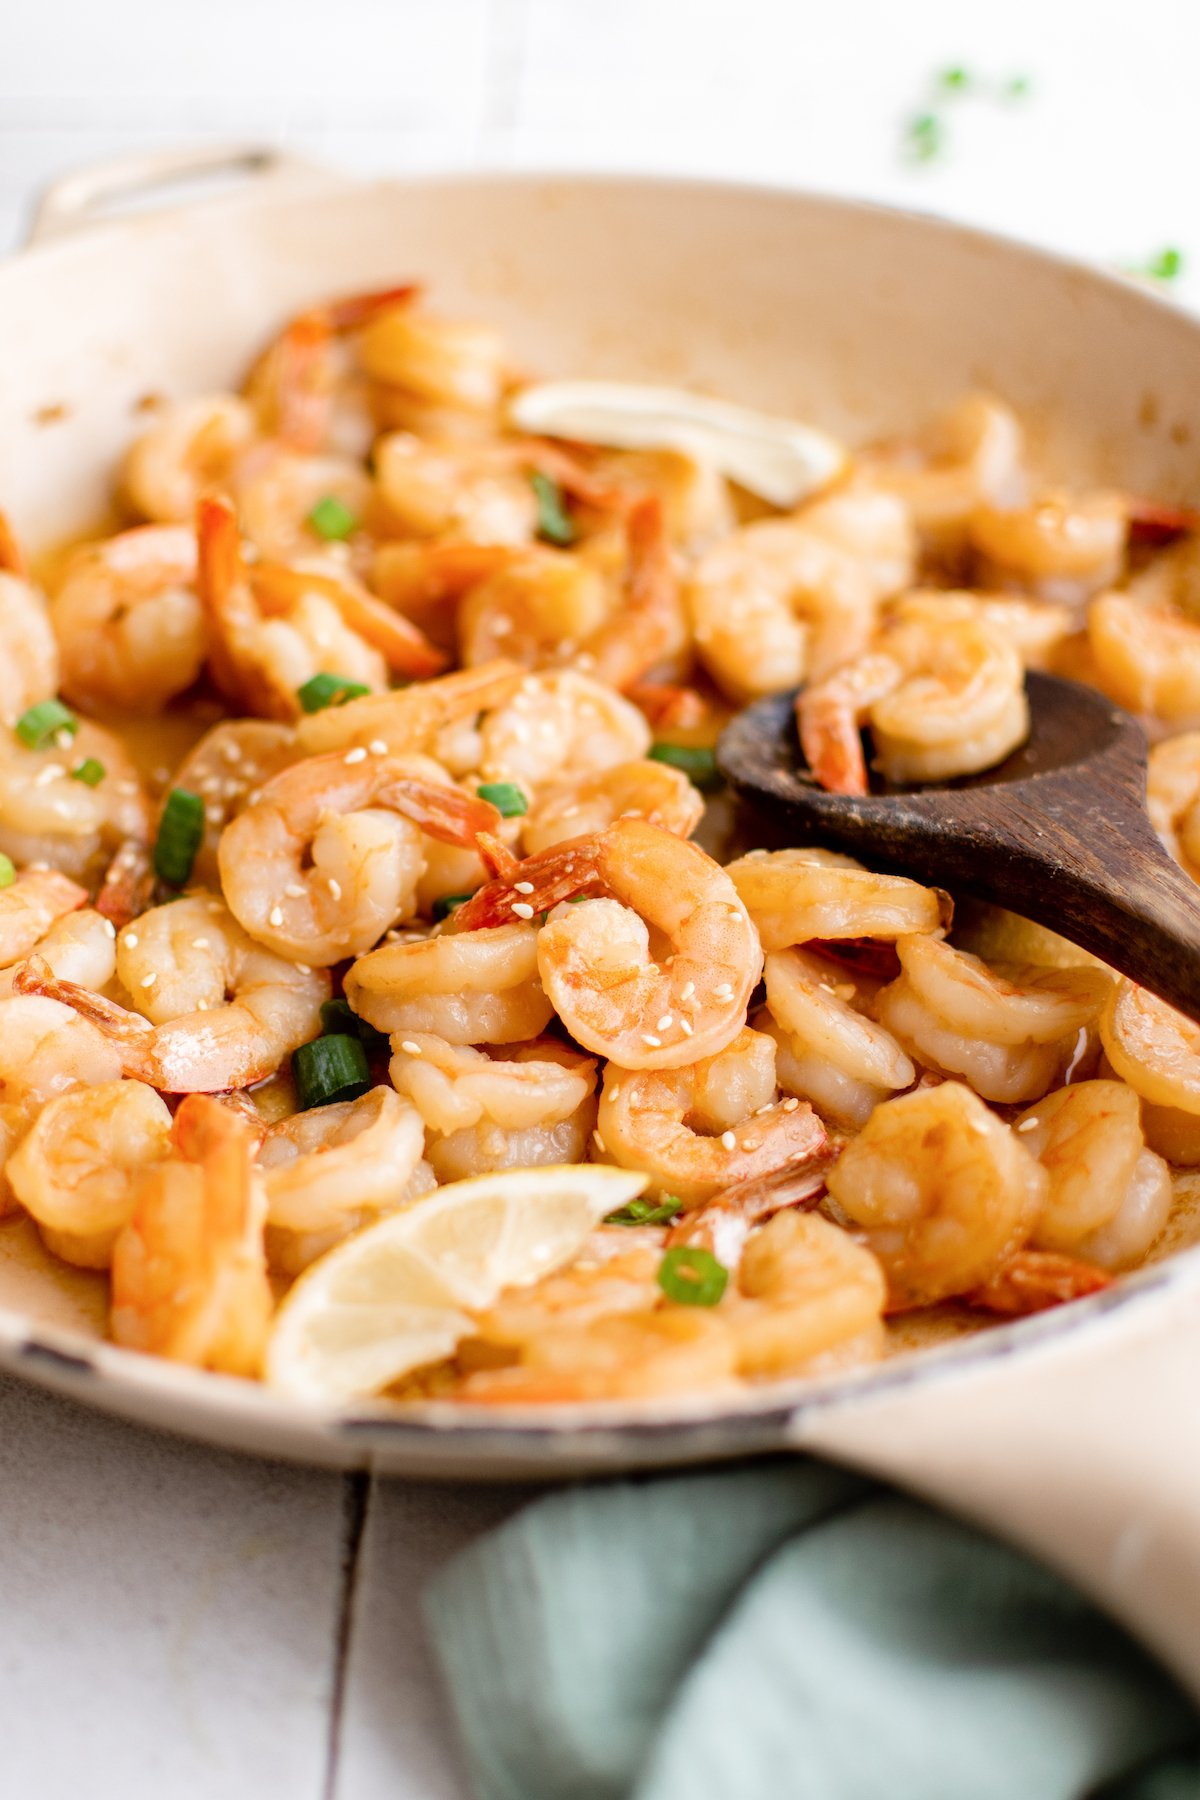 A large pan filled with cooked hibachi shrimp that's garnished with sliced green onions and sesame seeds.